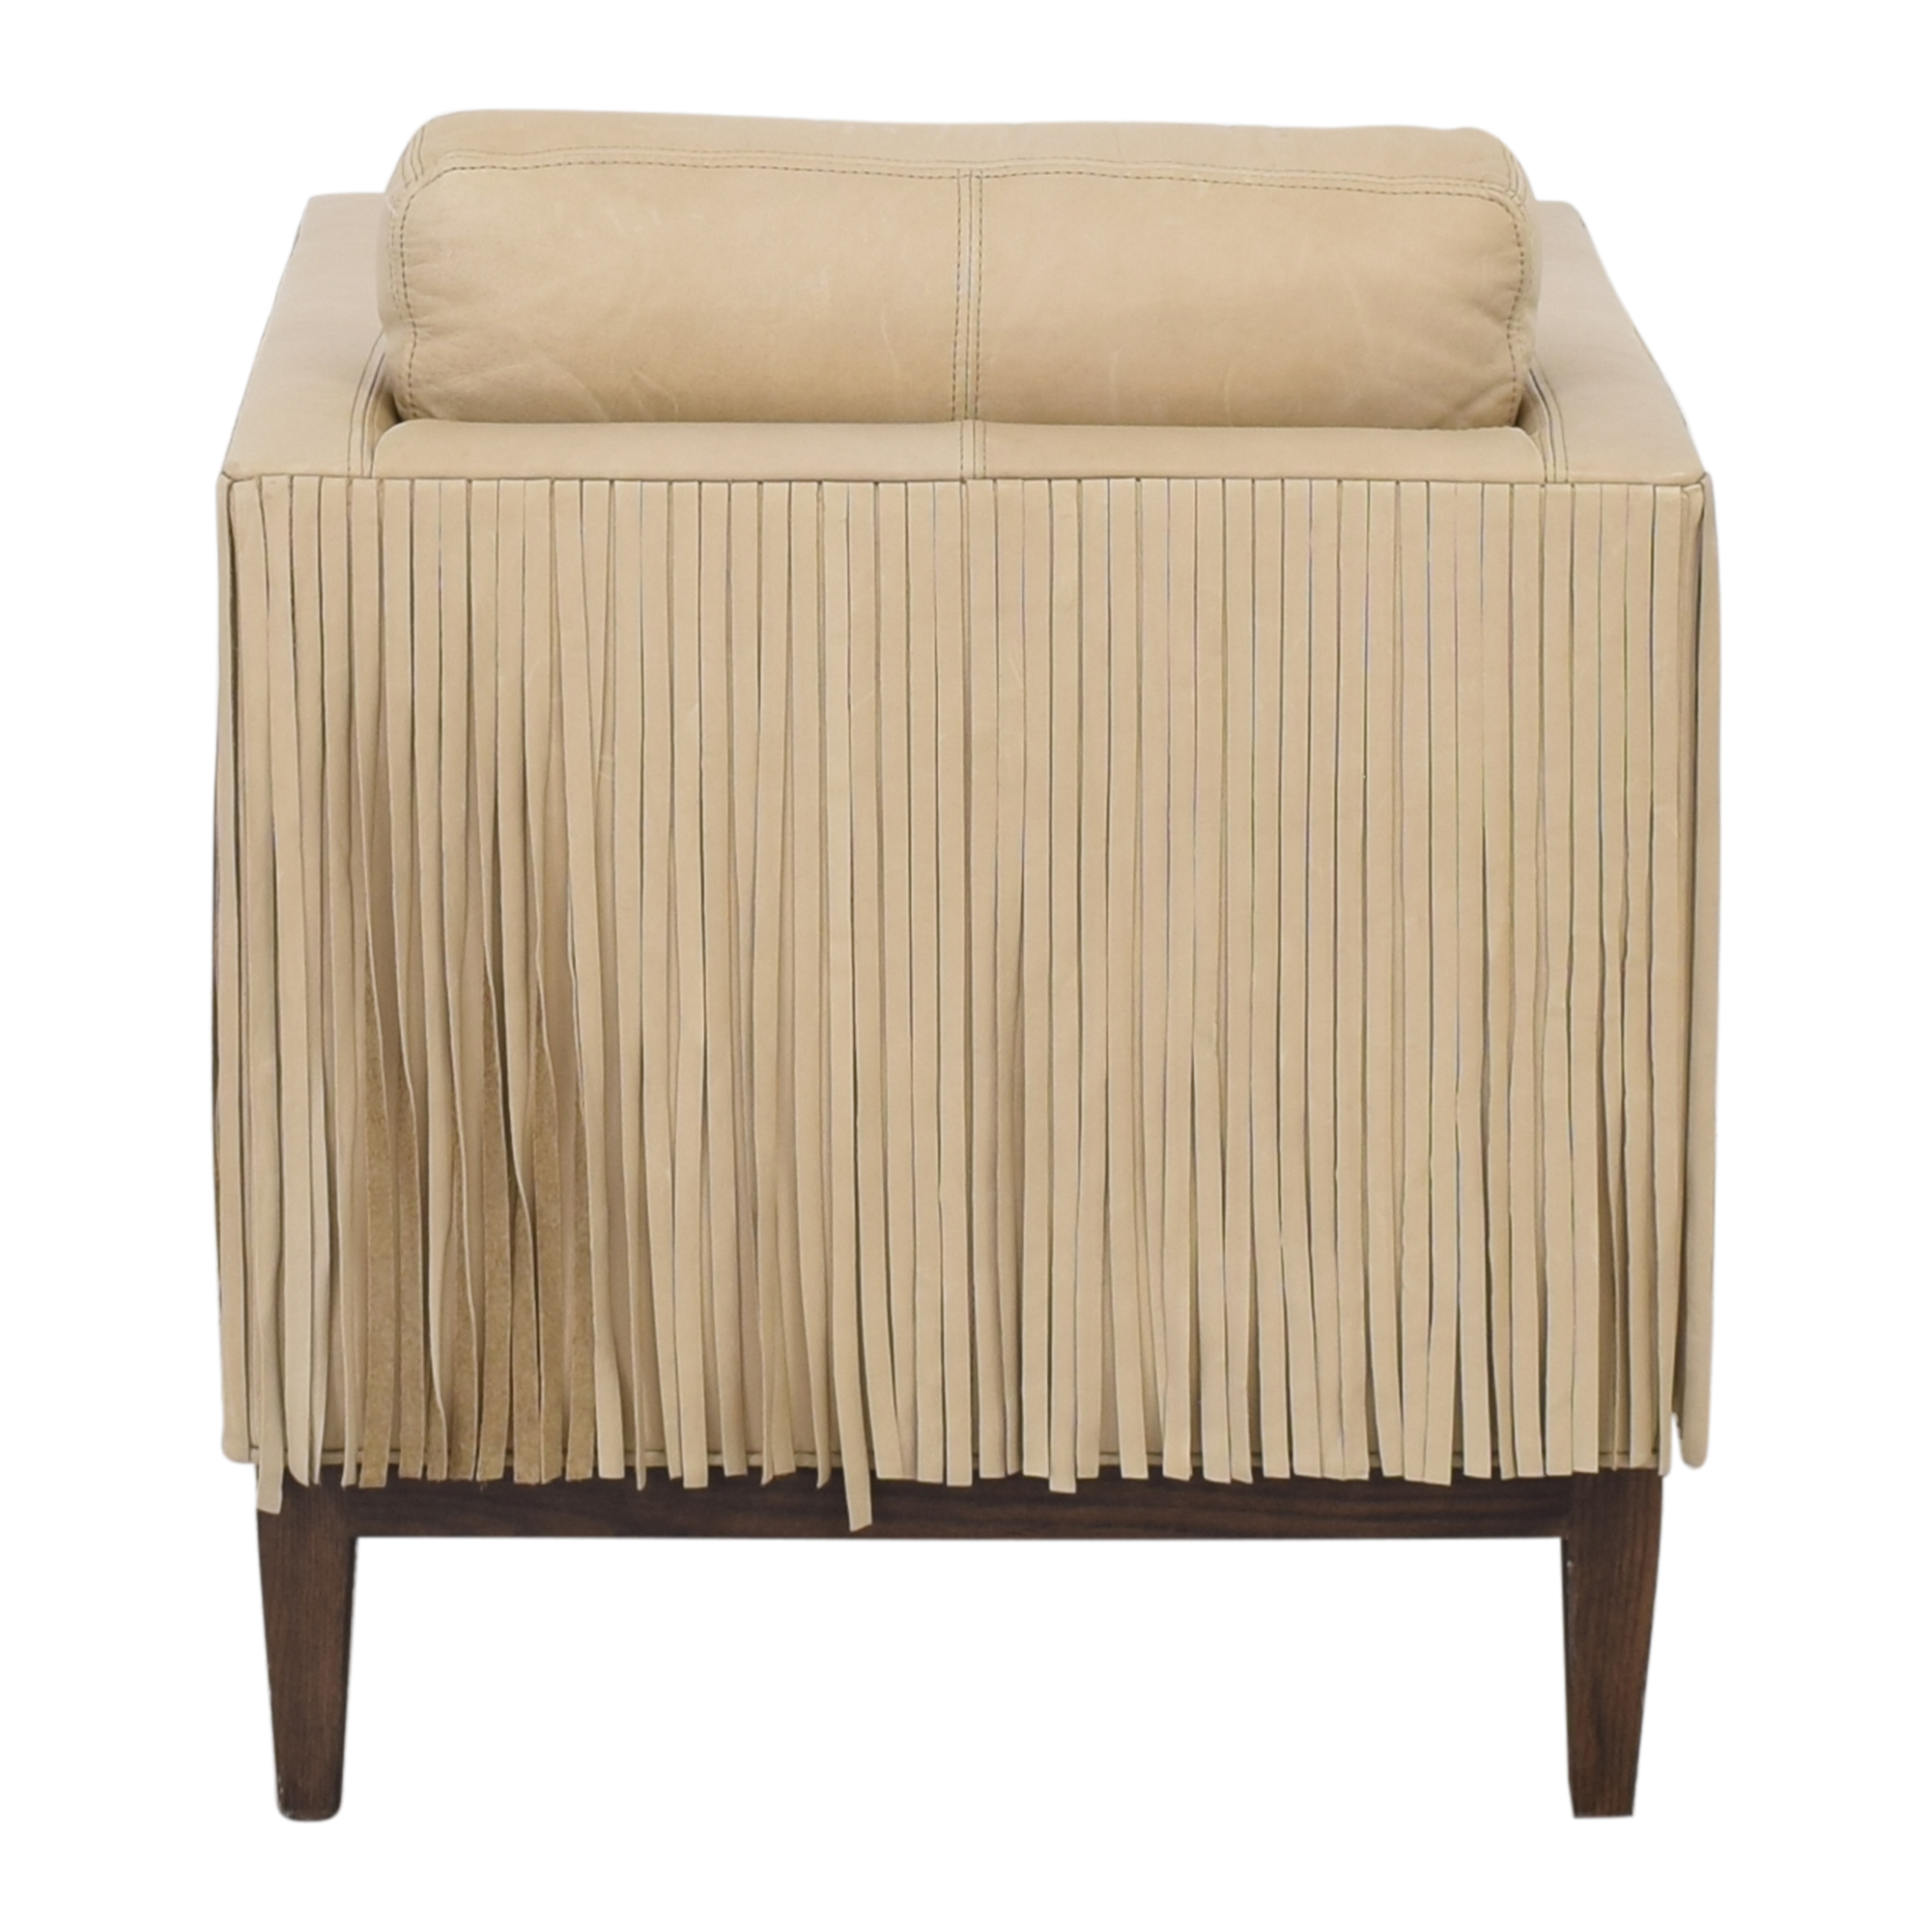 Lee Industries Lee Industries Leather Fringe Chair Accent Chairs